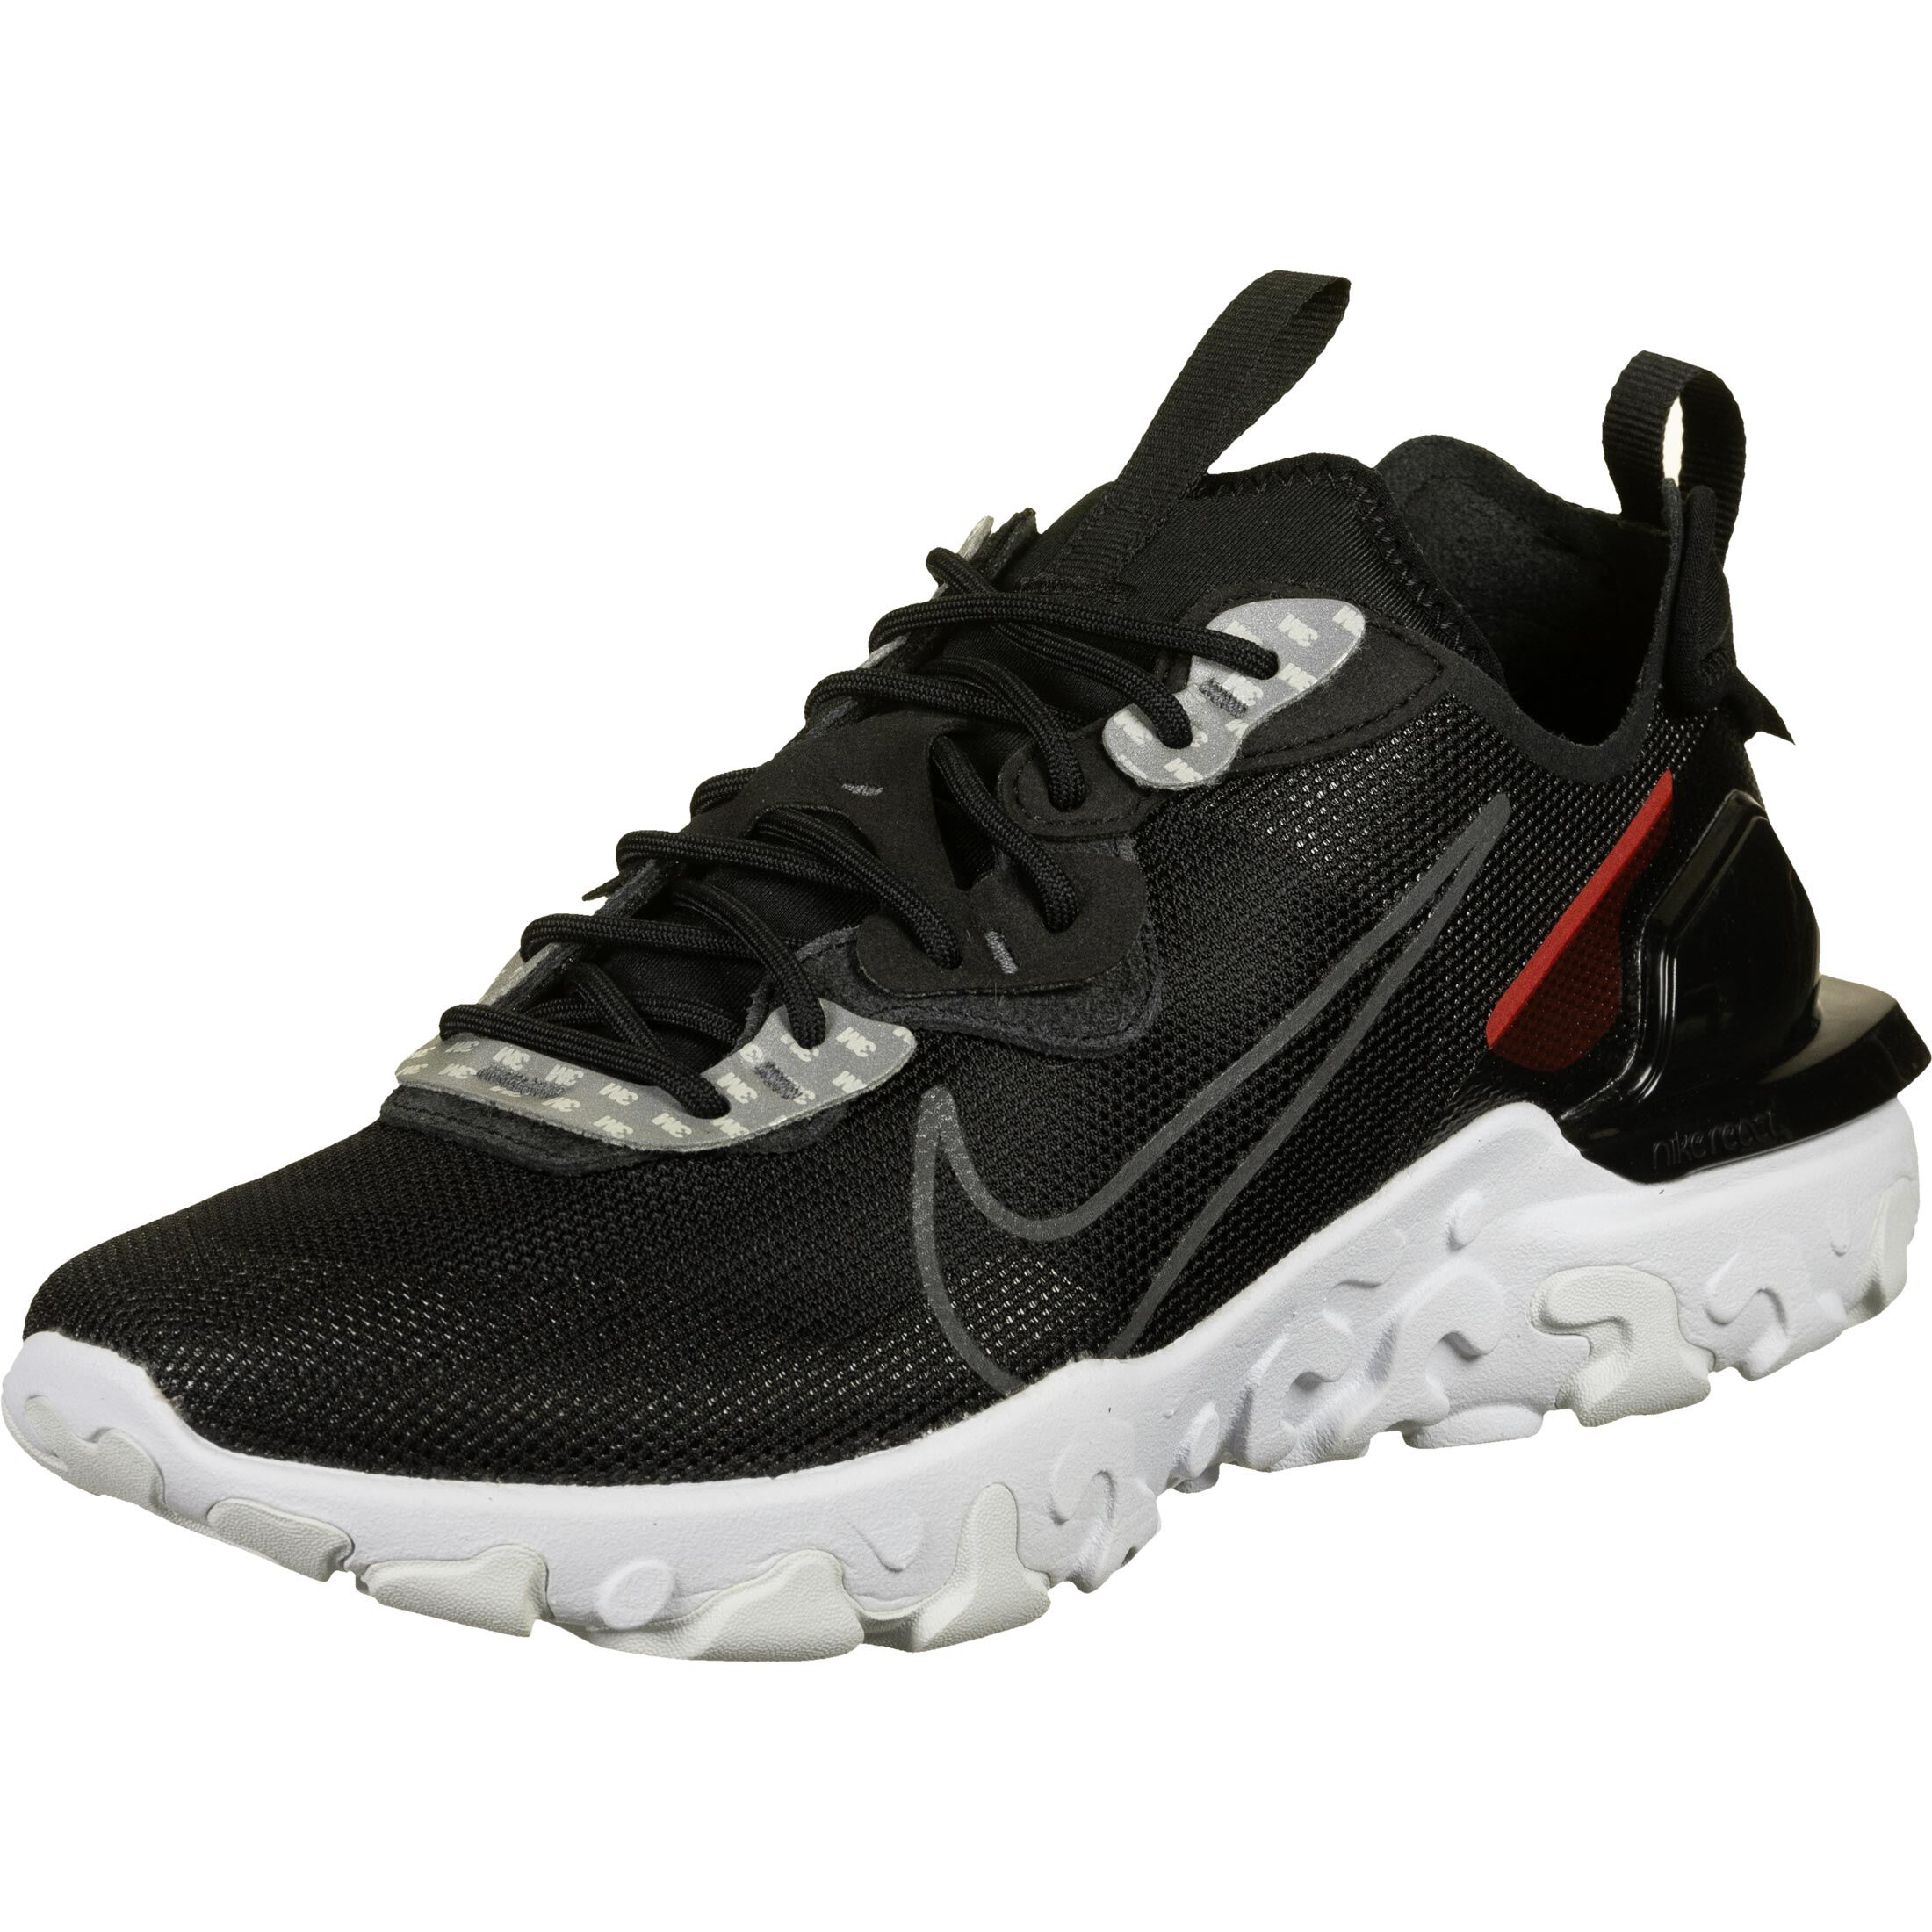 Nike React Vision 3M - Sneakers Low at Stylefile